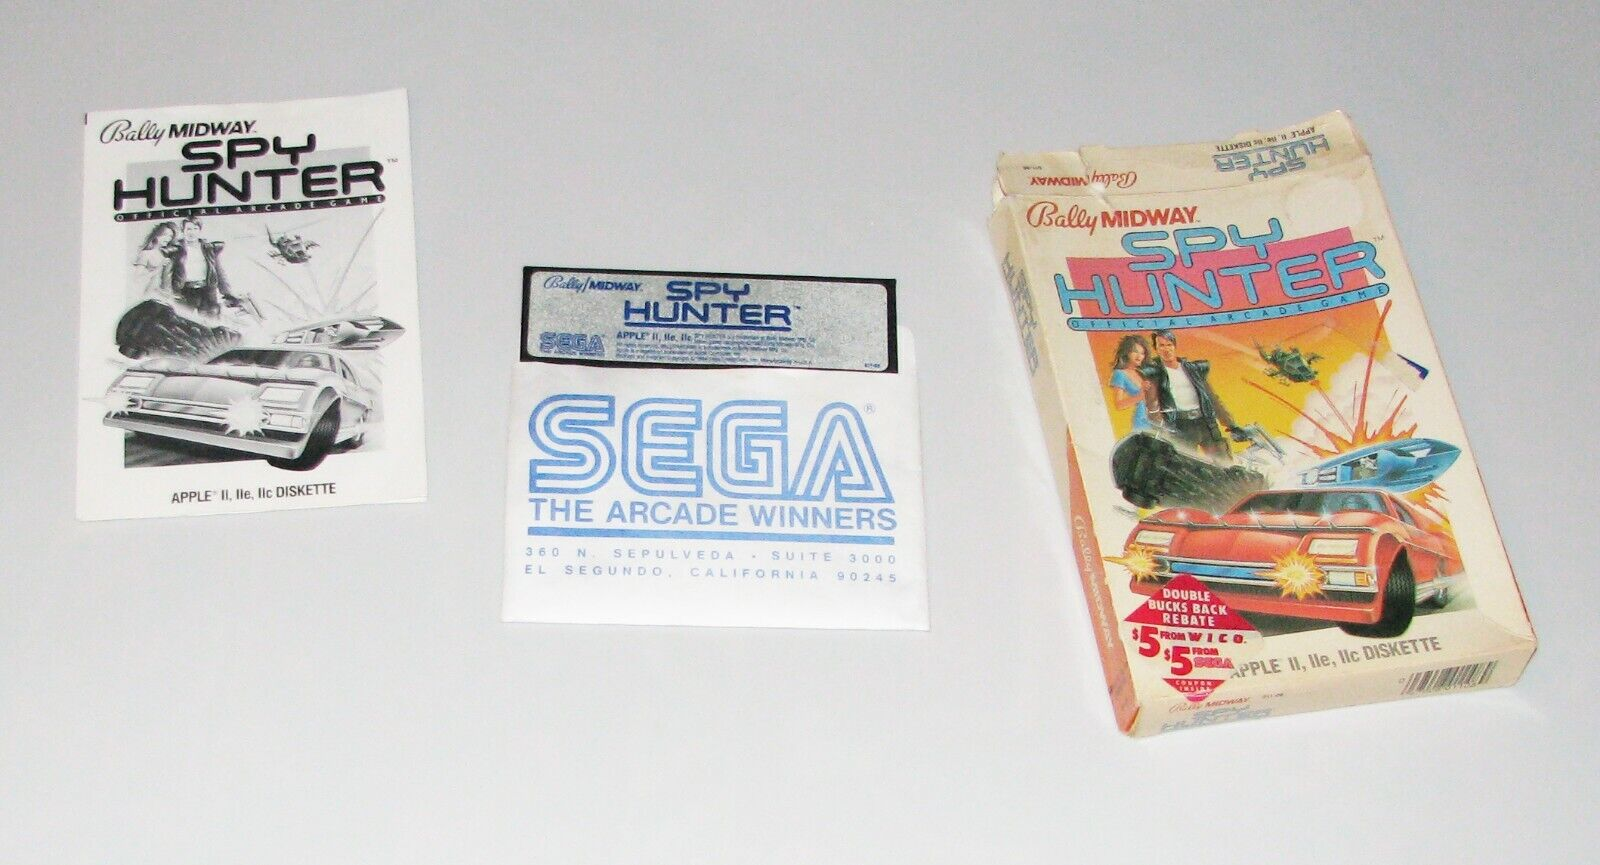 Computer Games - SPY HUNTER Apple 2 vintage computer game by SEGA (USED/ AS IS).